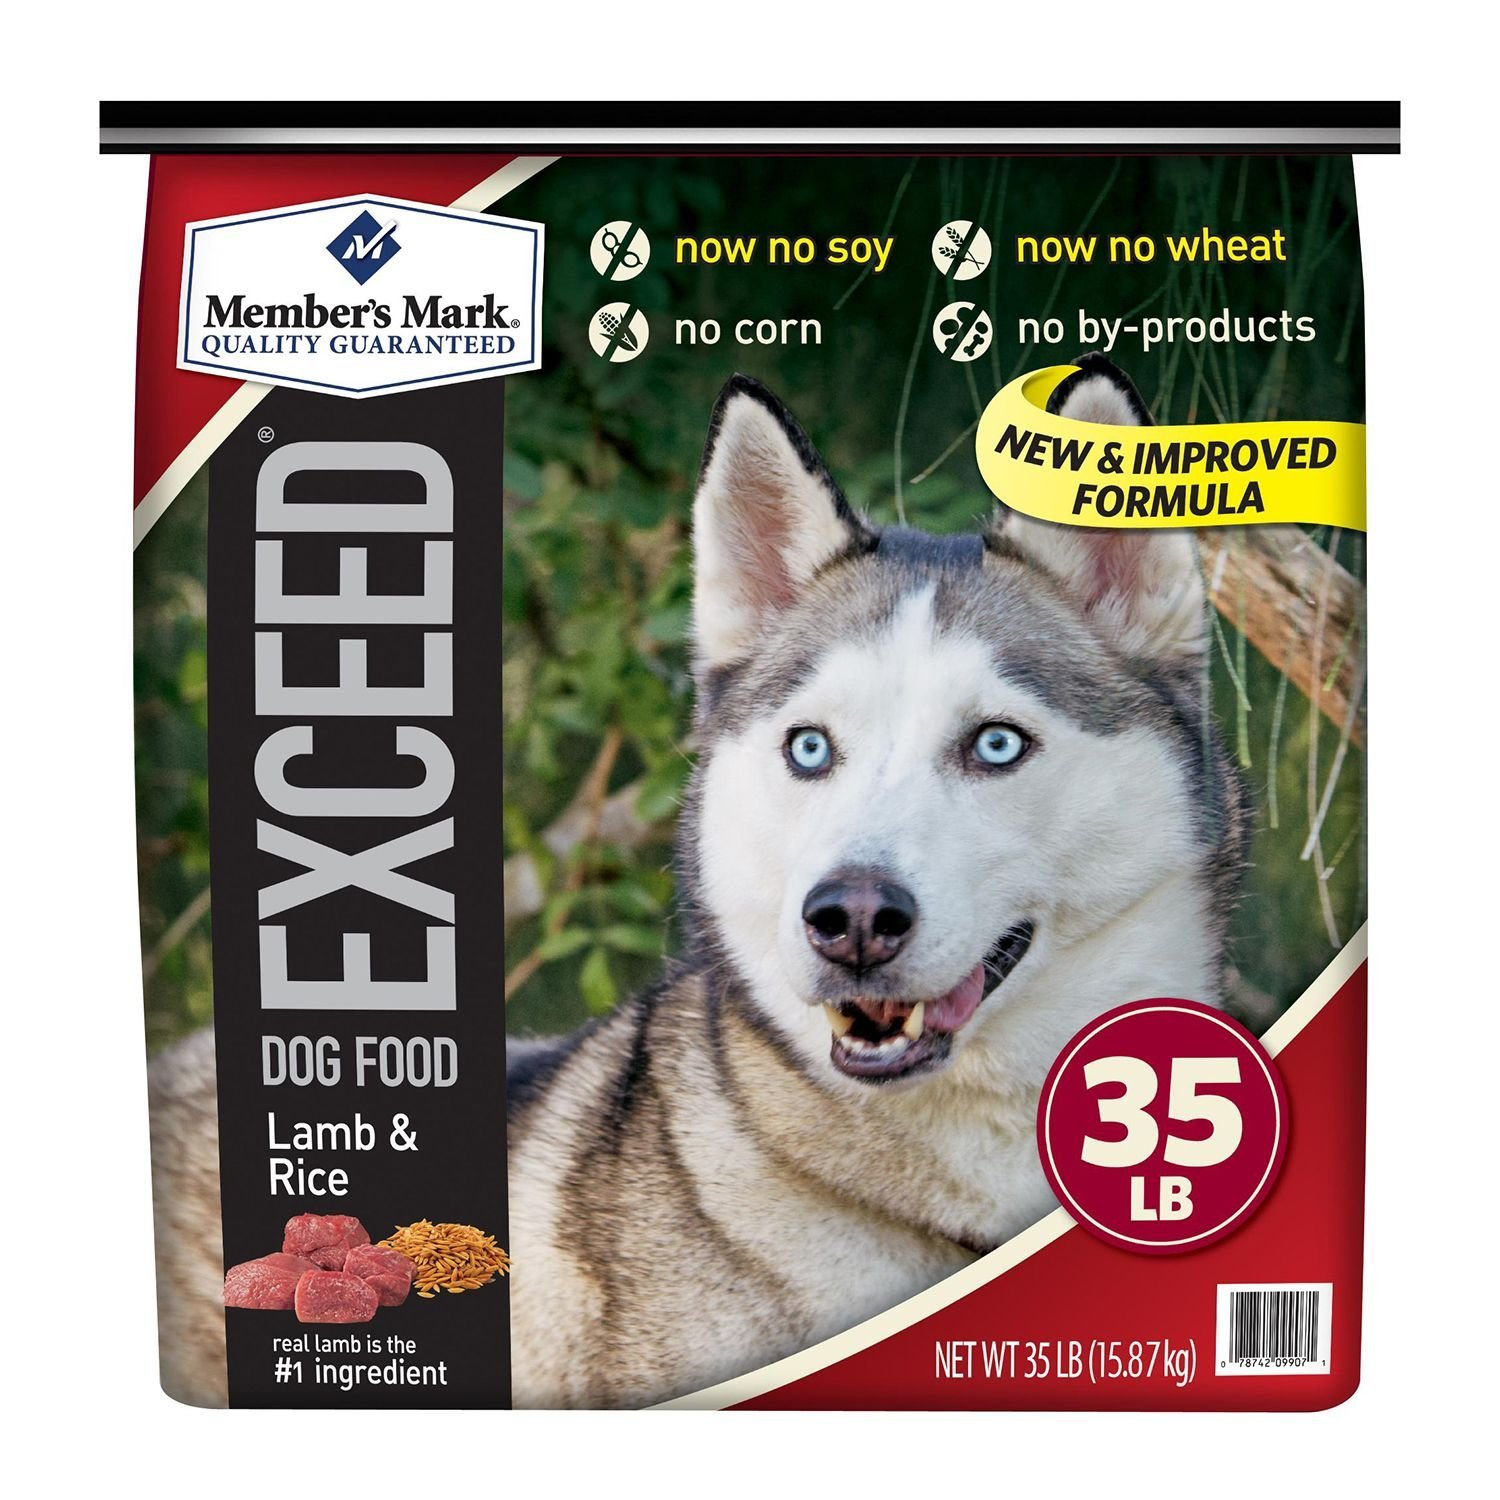 Member's Mark Exceed Dog Food, Chicken & Rice (35 lbs.)